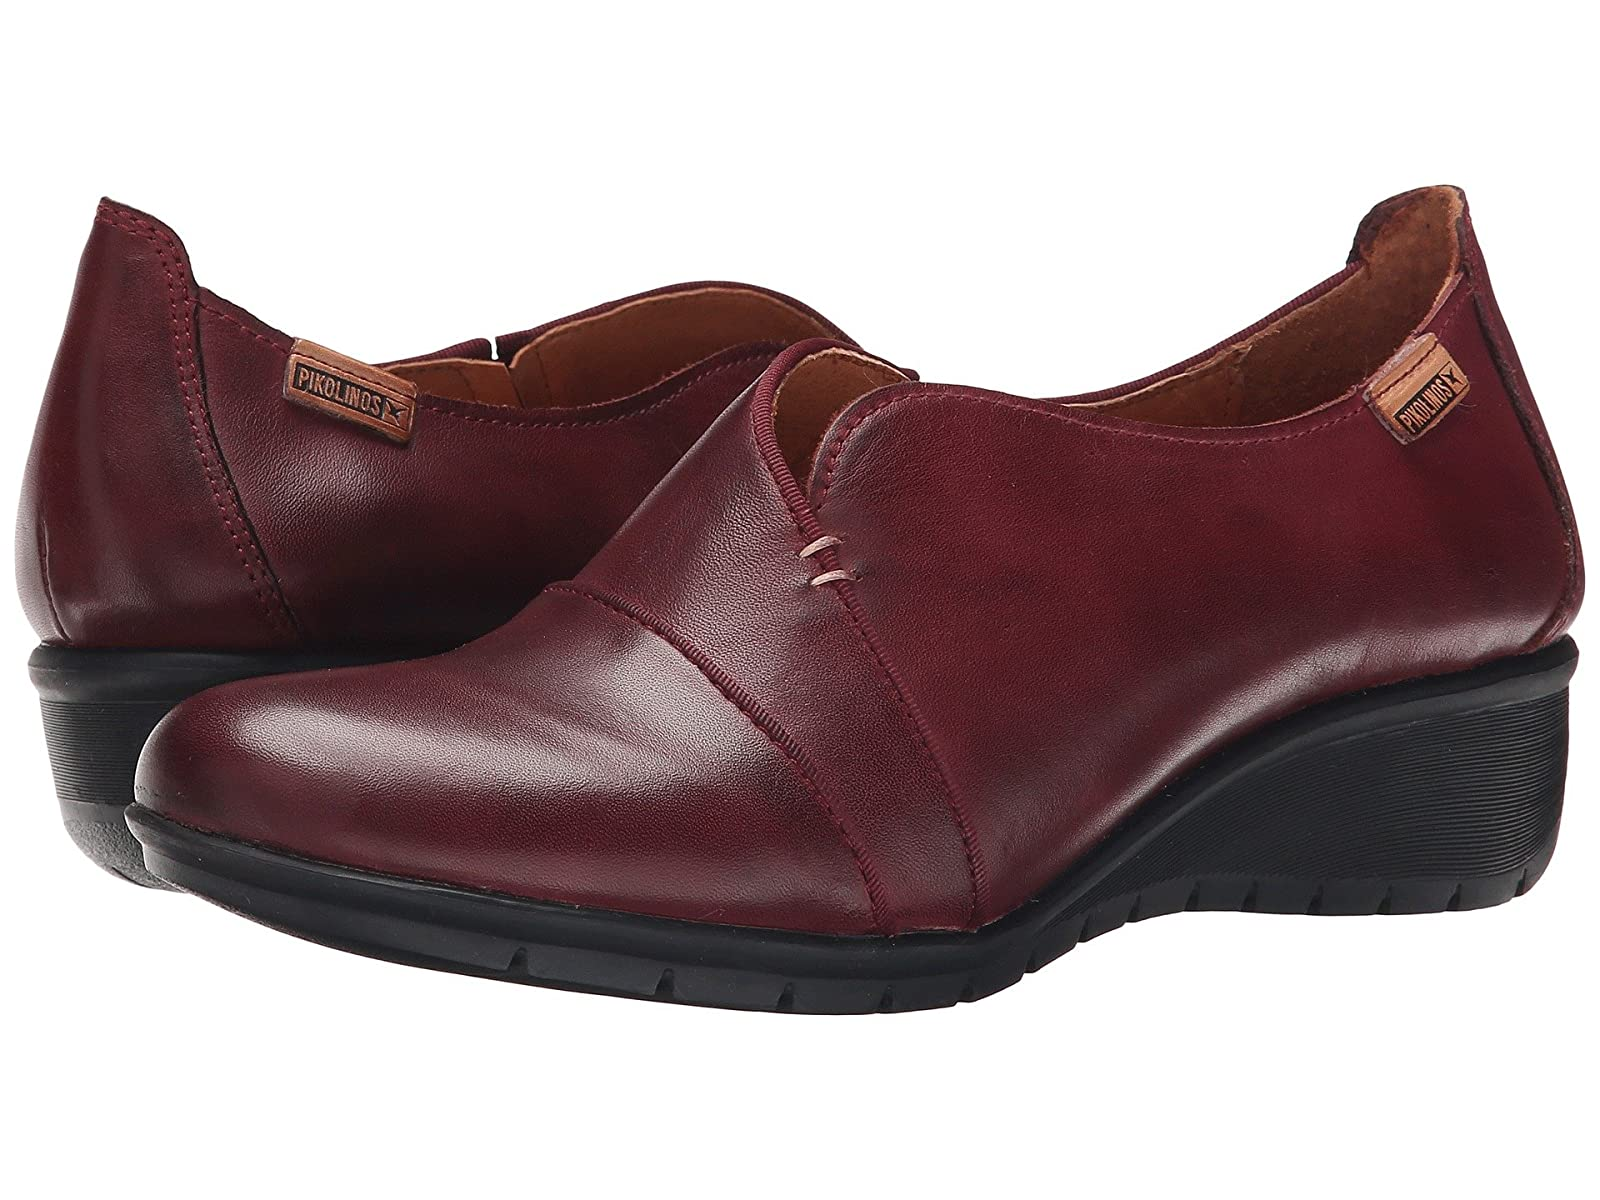 Pikolinos Victoriaville W8C-3540Cheap and distinctive eye-catching shoes